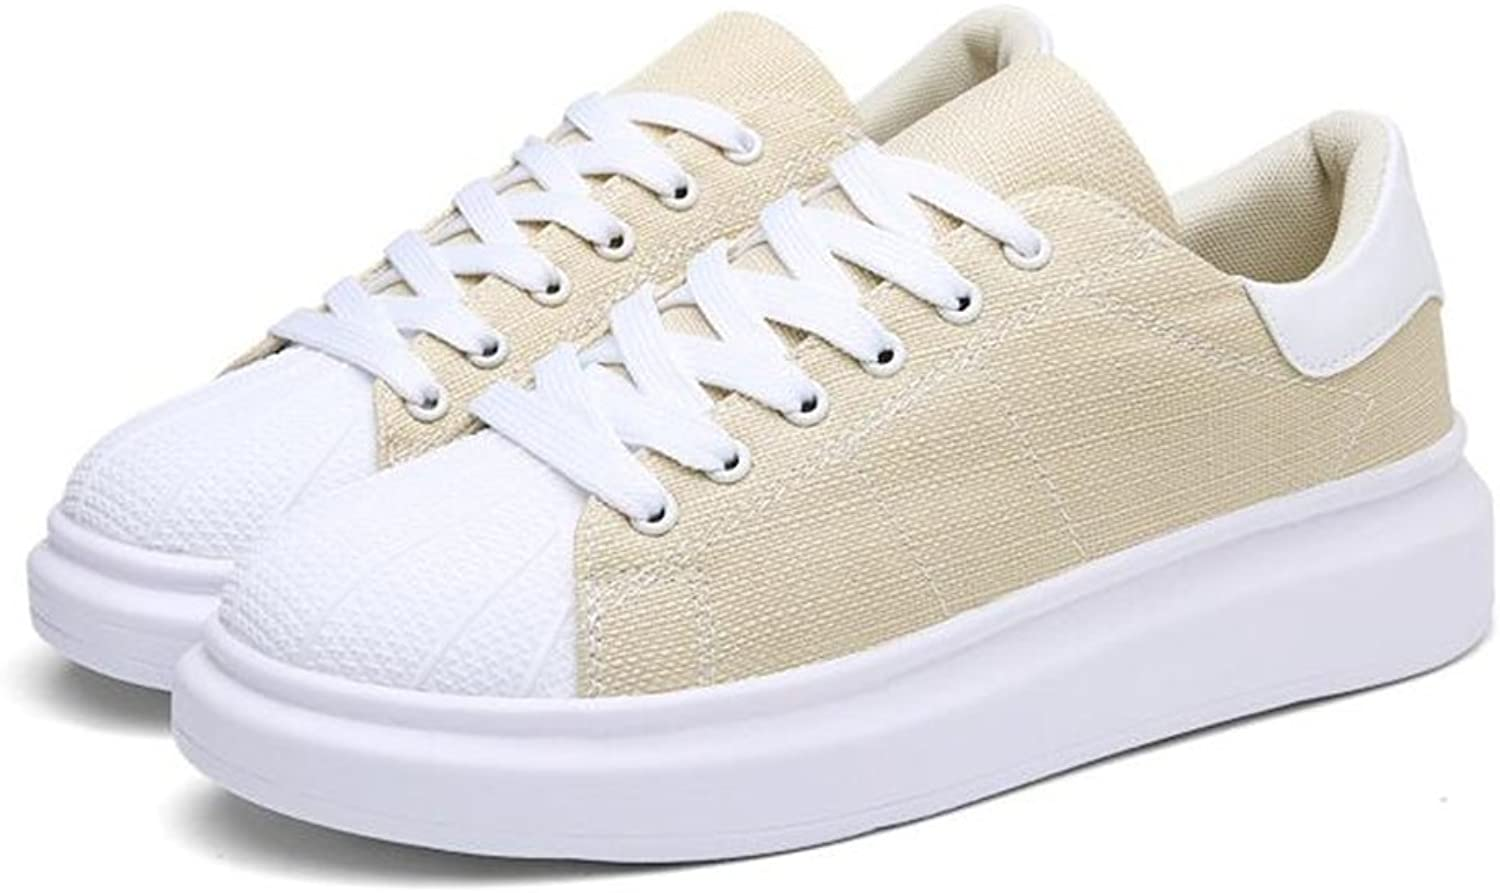 F1rst Rate Womens Fashion Canvas Sneaker Low Cut Lace UPS shoes